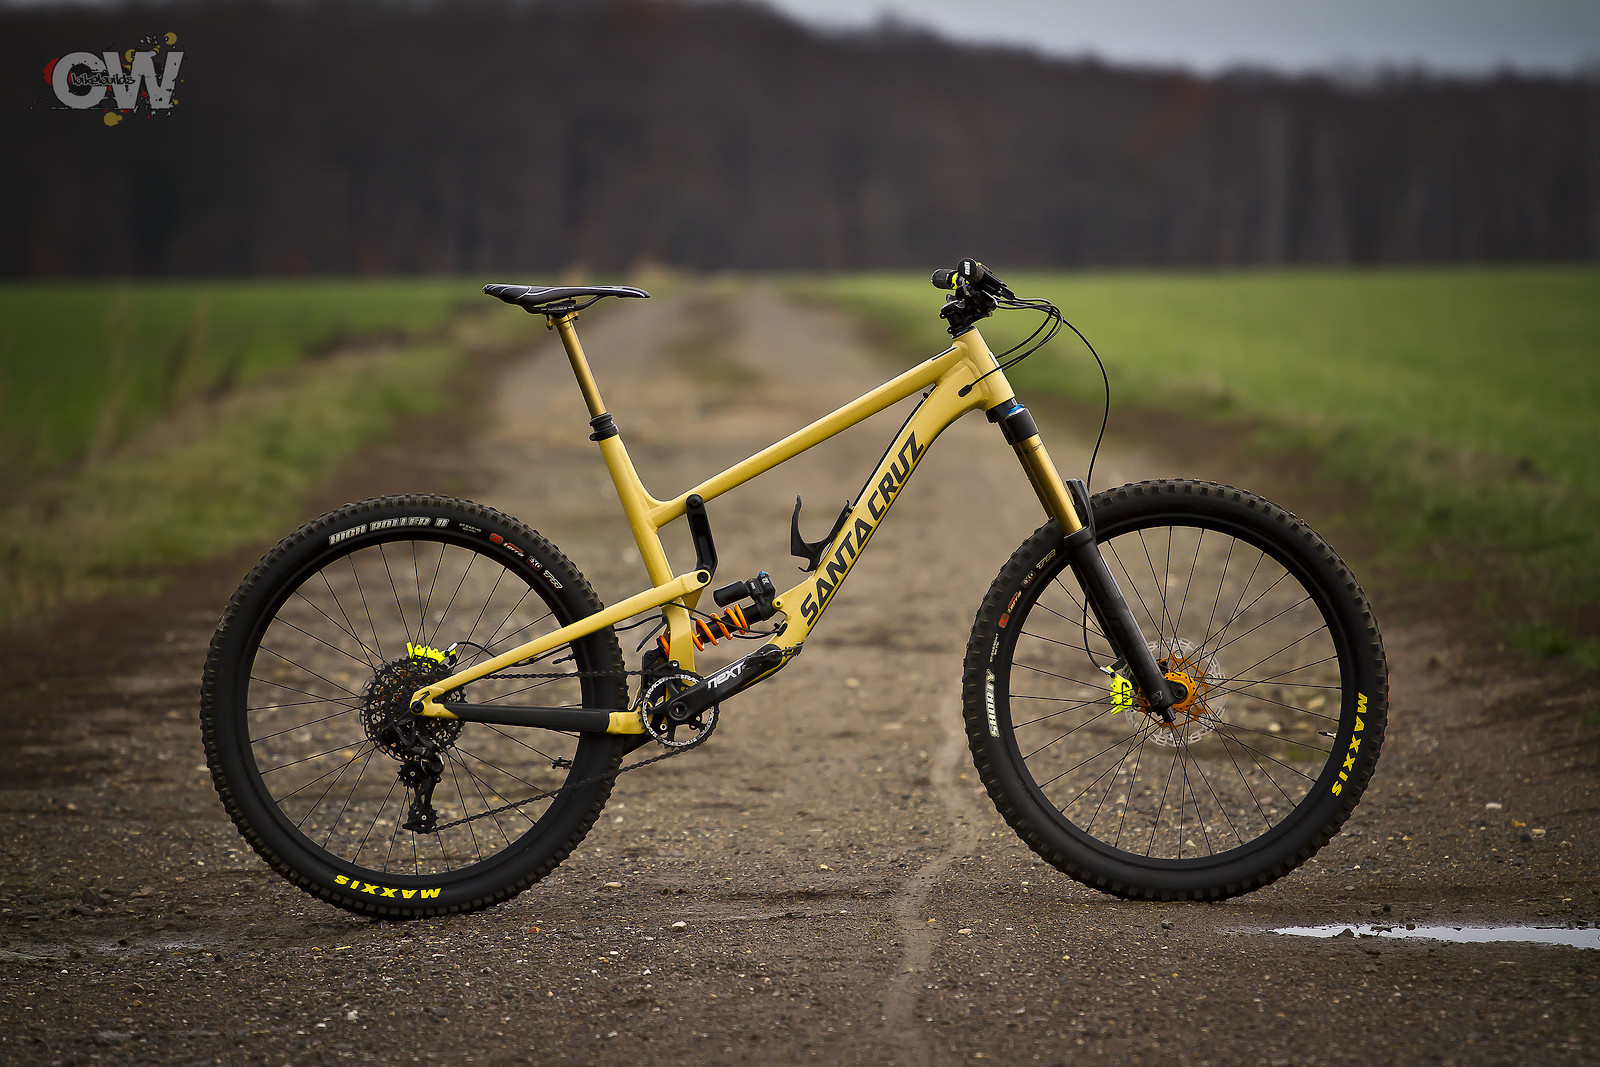 Santa Cruz Nomad 4 AL - 2019 Vital Bike of the Day Collection - Mountain Biking Pictures - Vital MTB